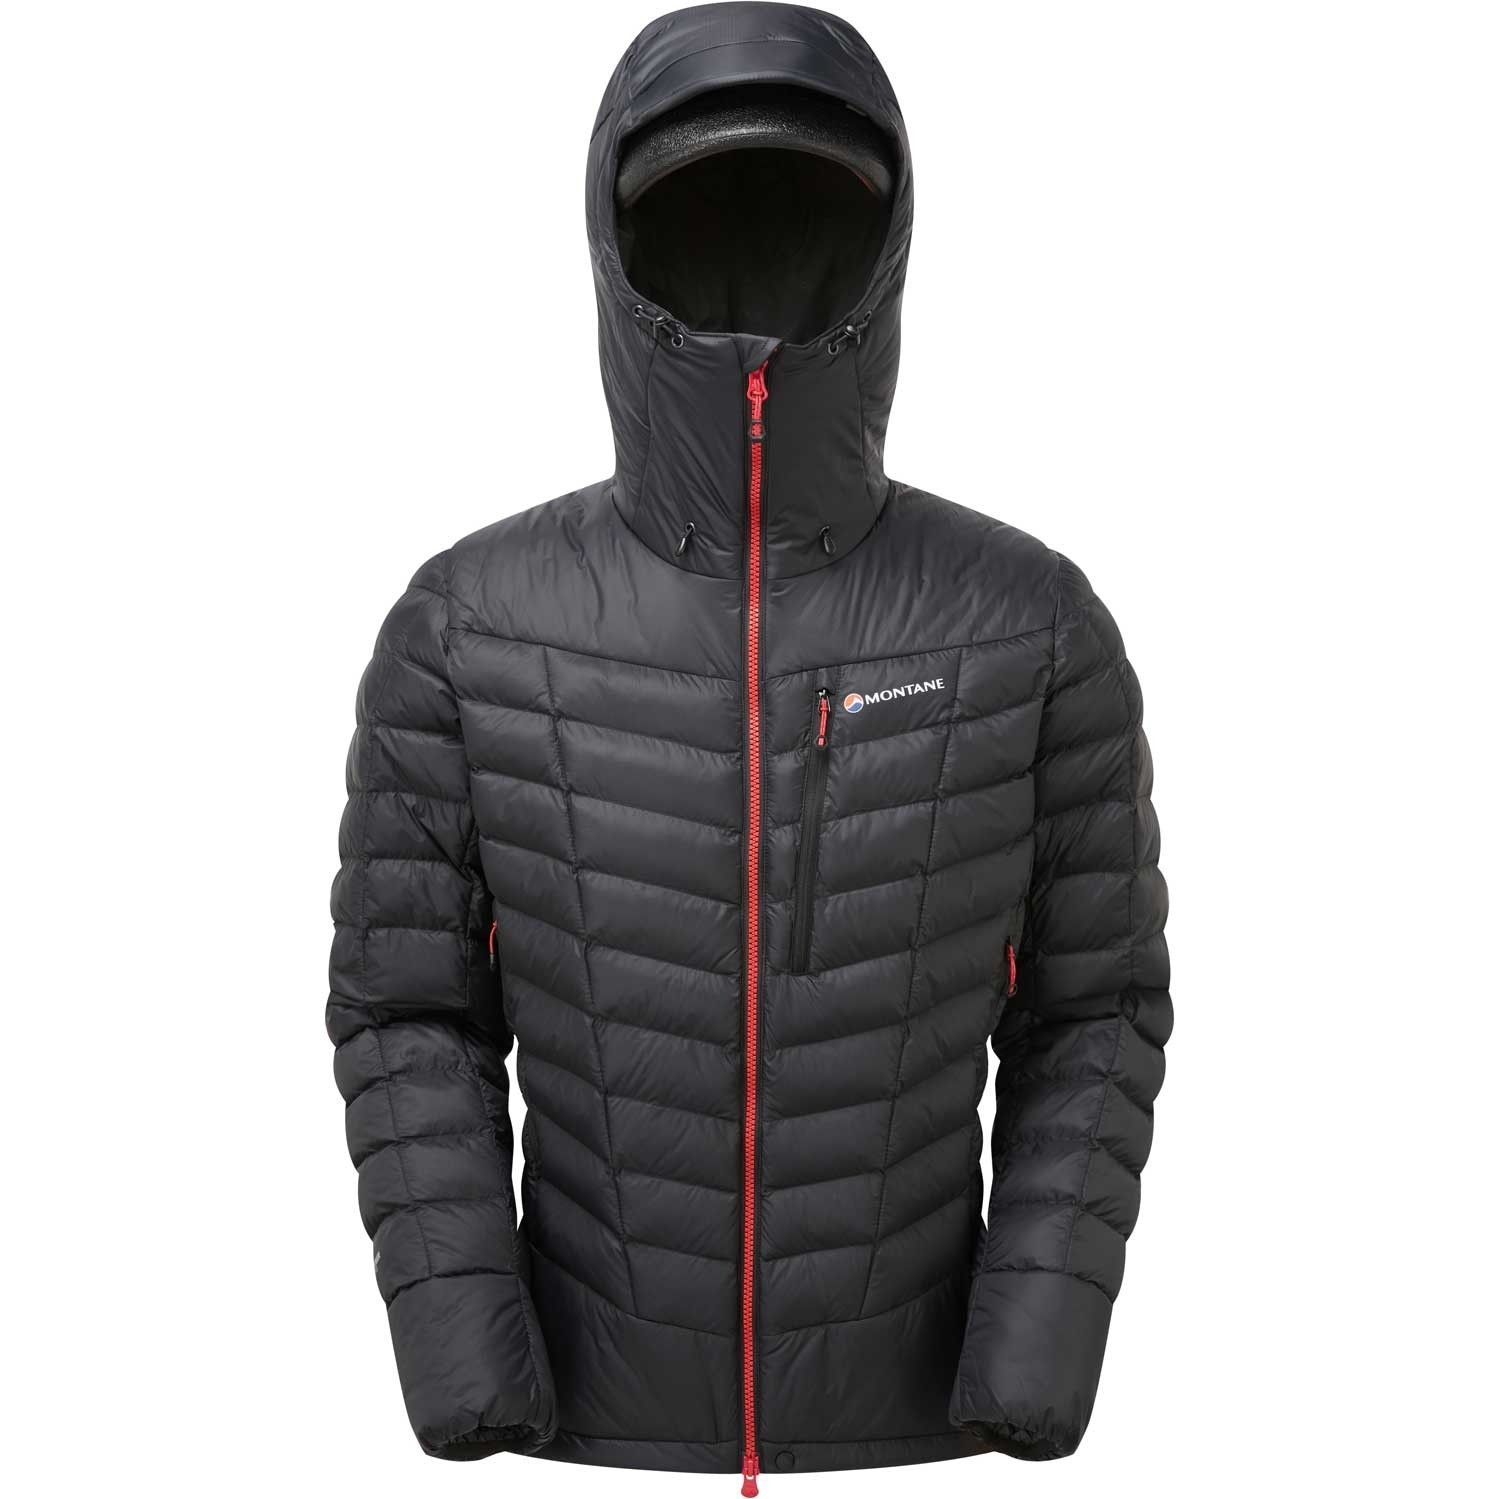 Montane Ground Control Insulated Jacket - Men's - Black/Alpine Red